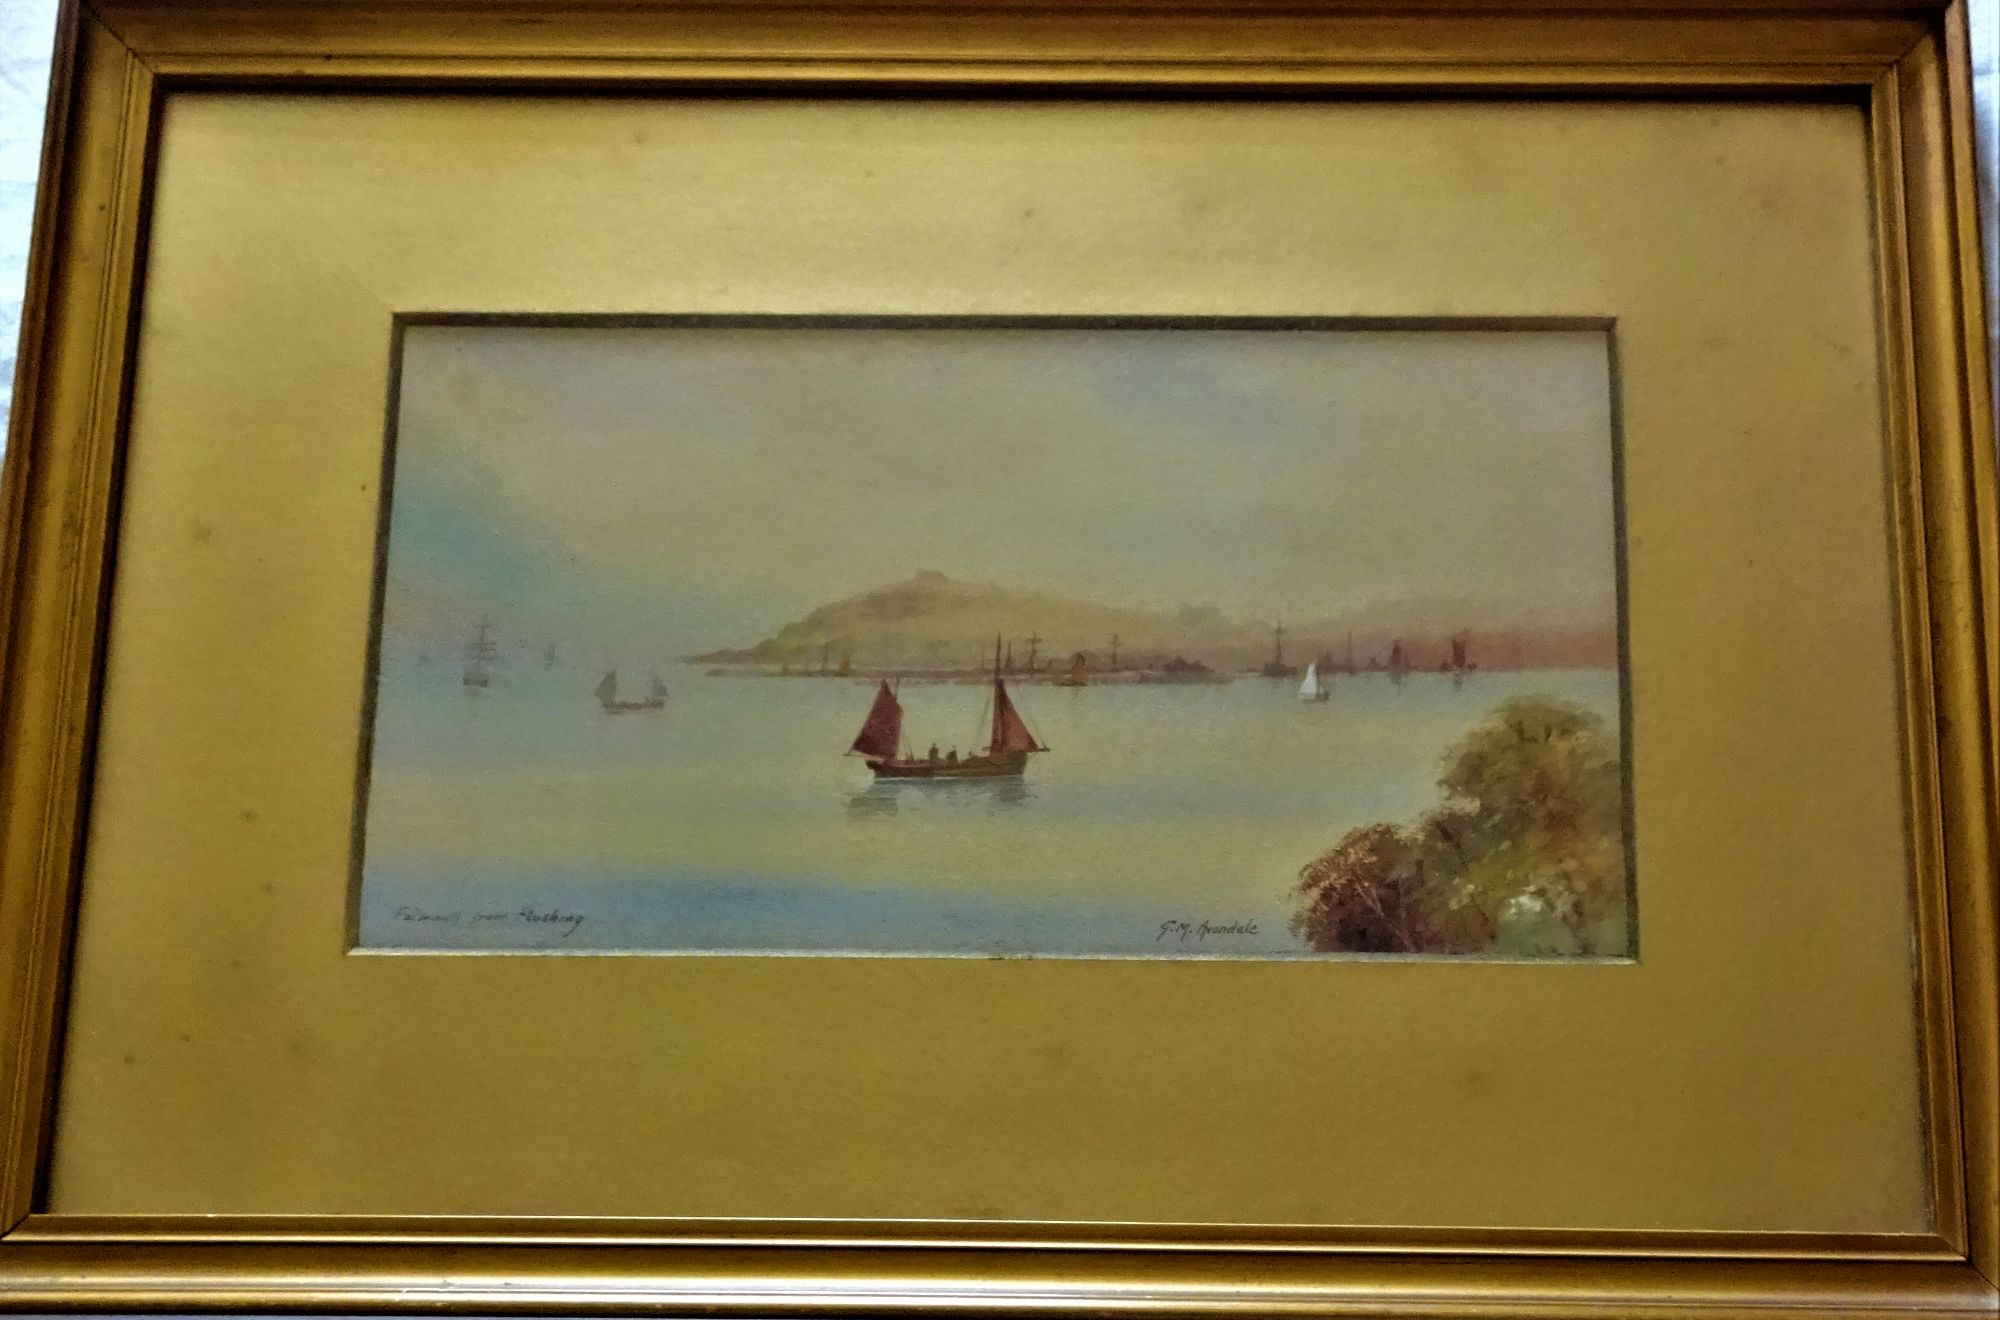 Falmouth from Flushing, watercolour and gouache, titled and signed G.M. Avondale, c1920.